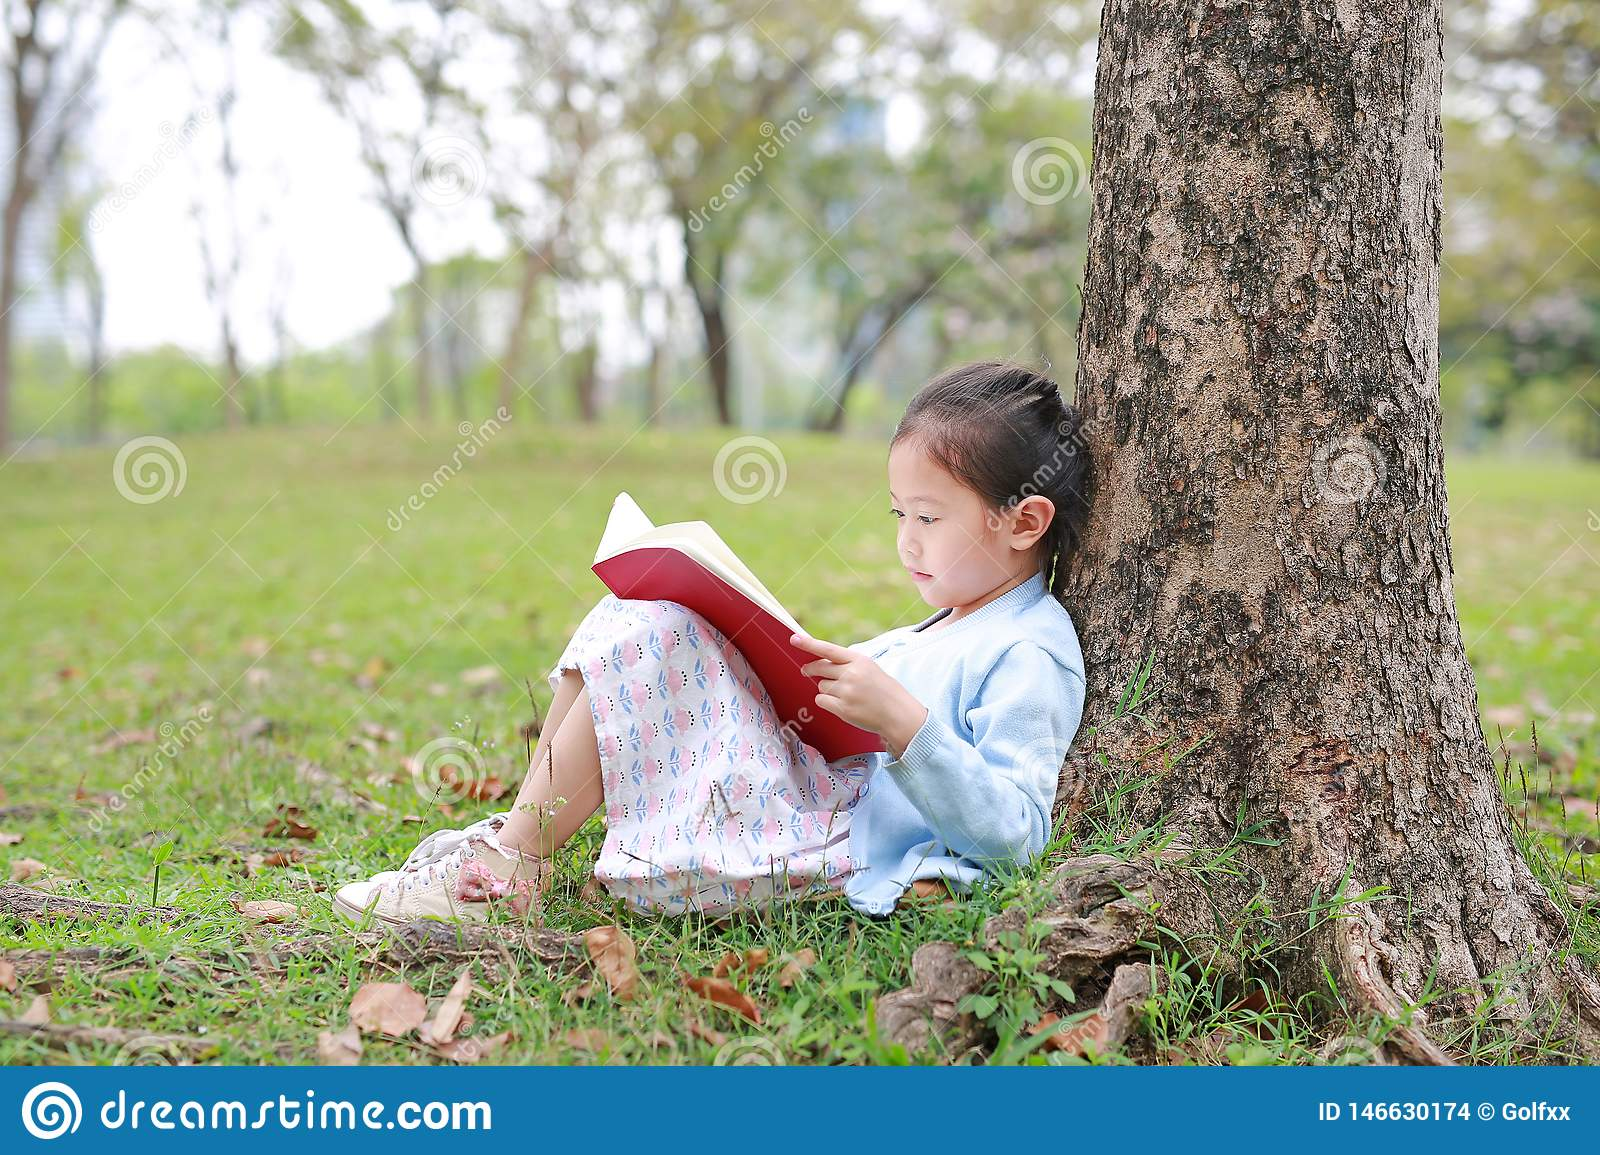 Pretty little girl reading a book sitting under a tree outdoor garden at summer day